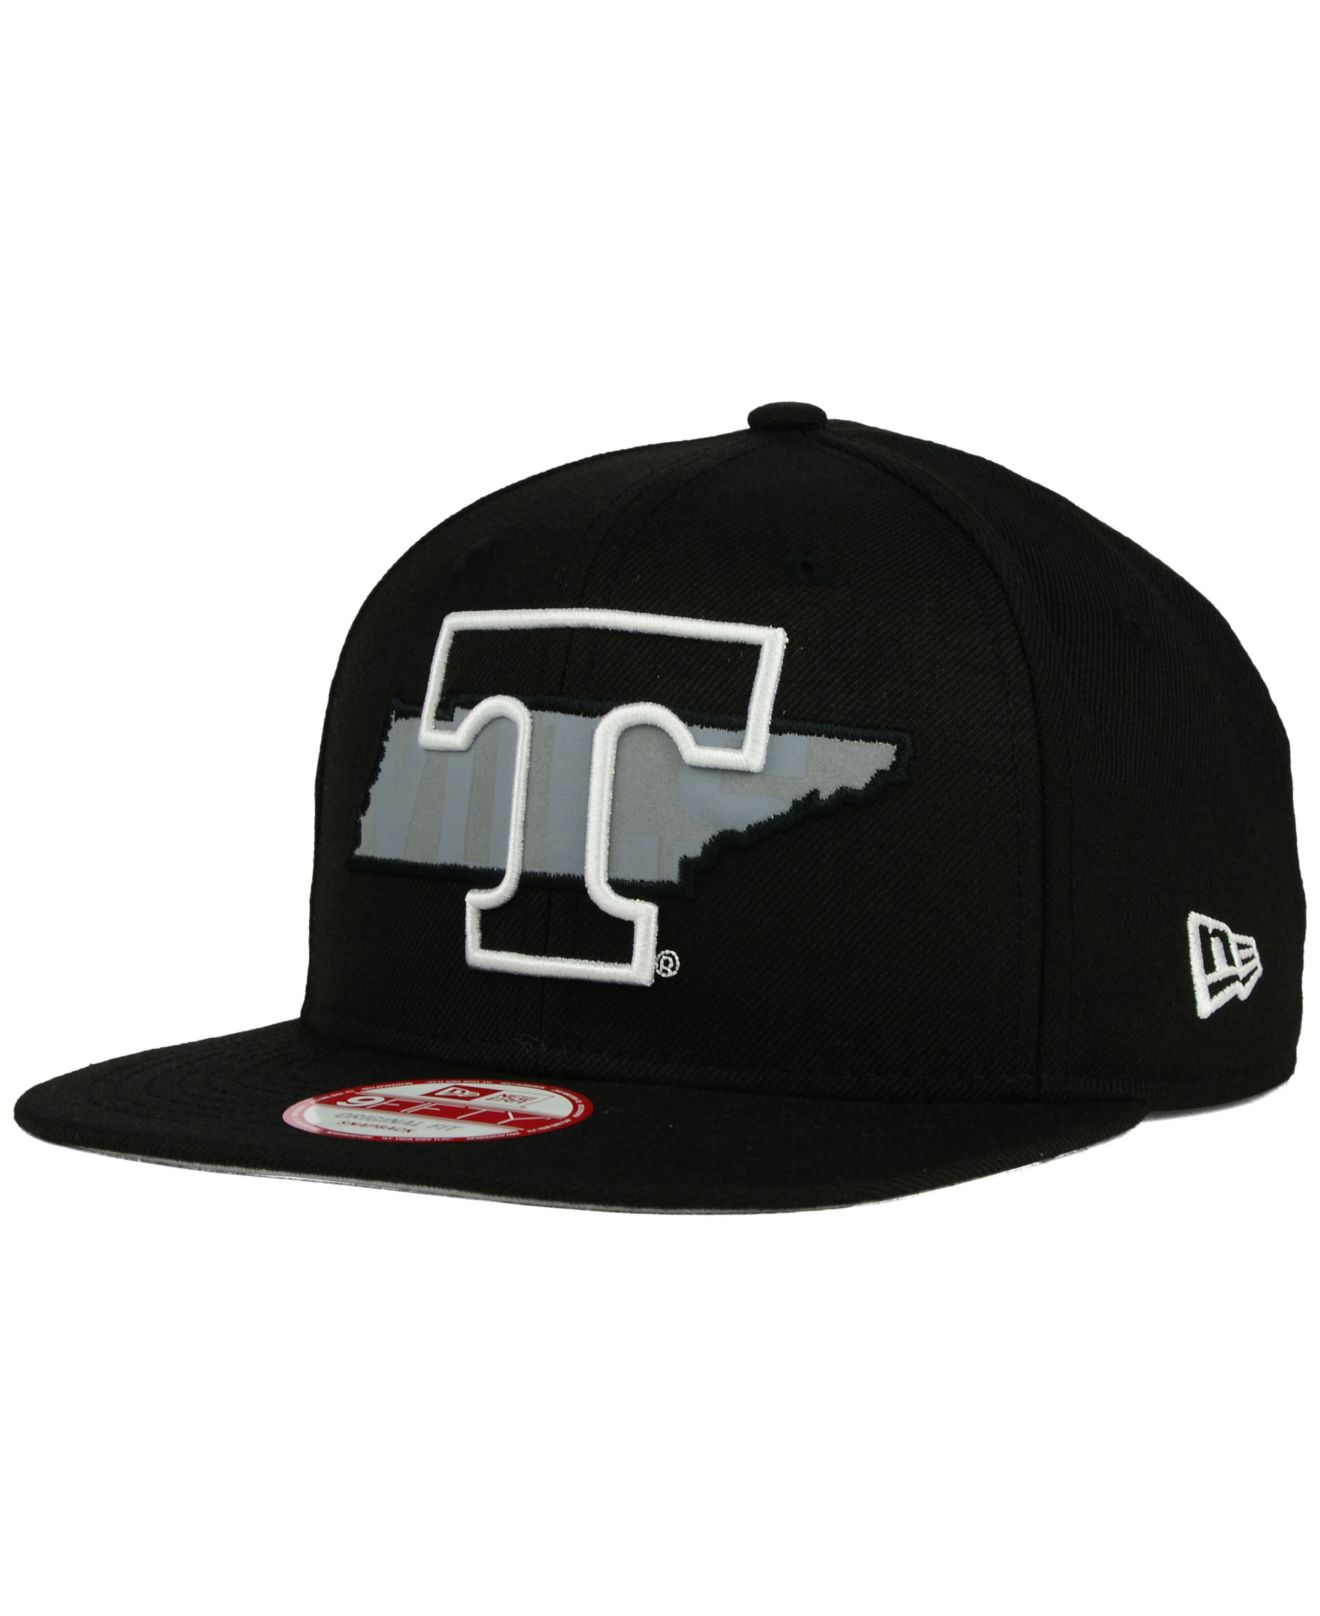 outlet store ac151 9de07 ... hot lyst ktz tennessee volunteers state flective 9fifty snapback cap  3927d 3bda5